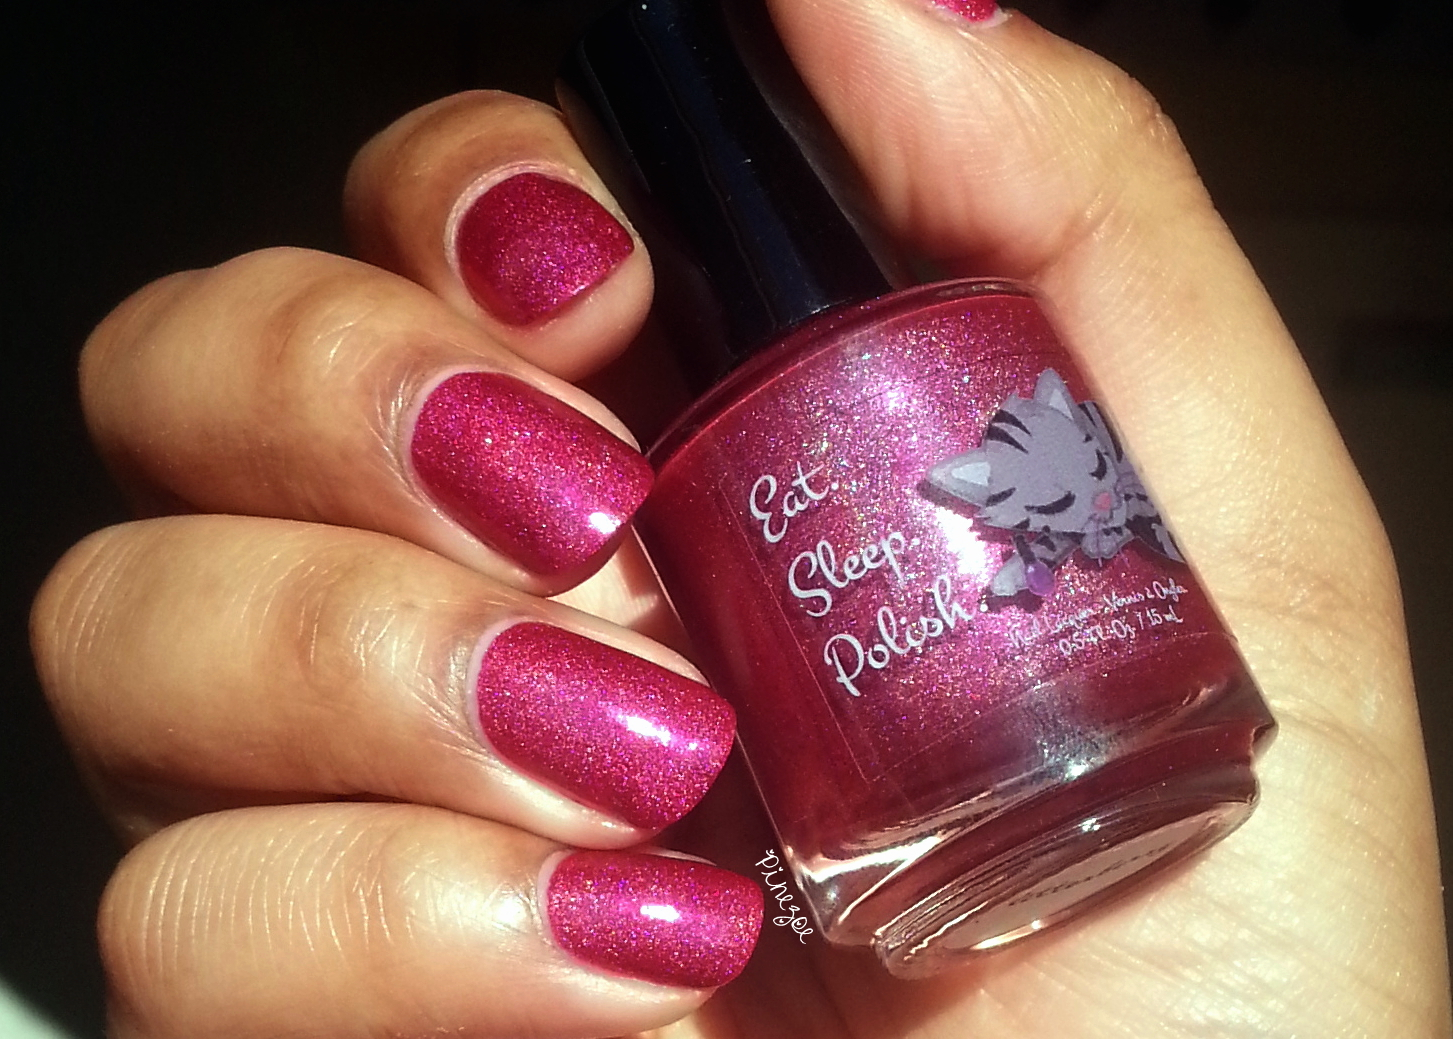 Eat Sleep Polish - Glitter Berry for My Kingdom For Glitters!